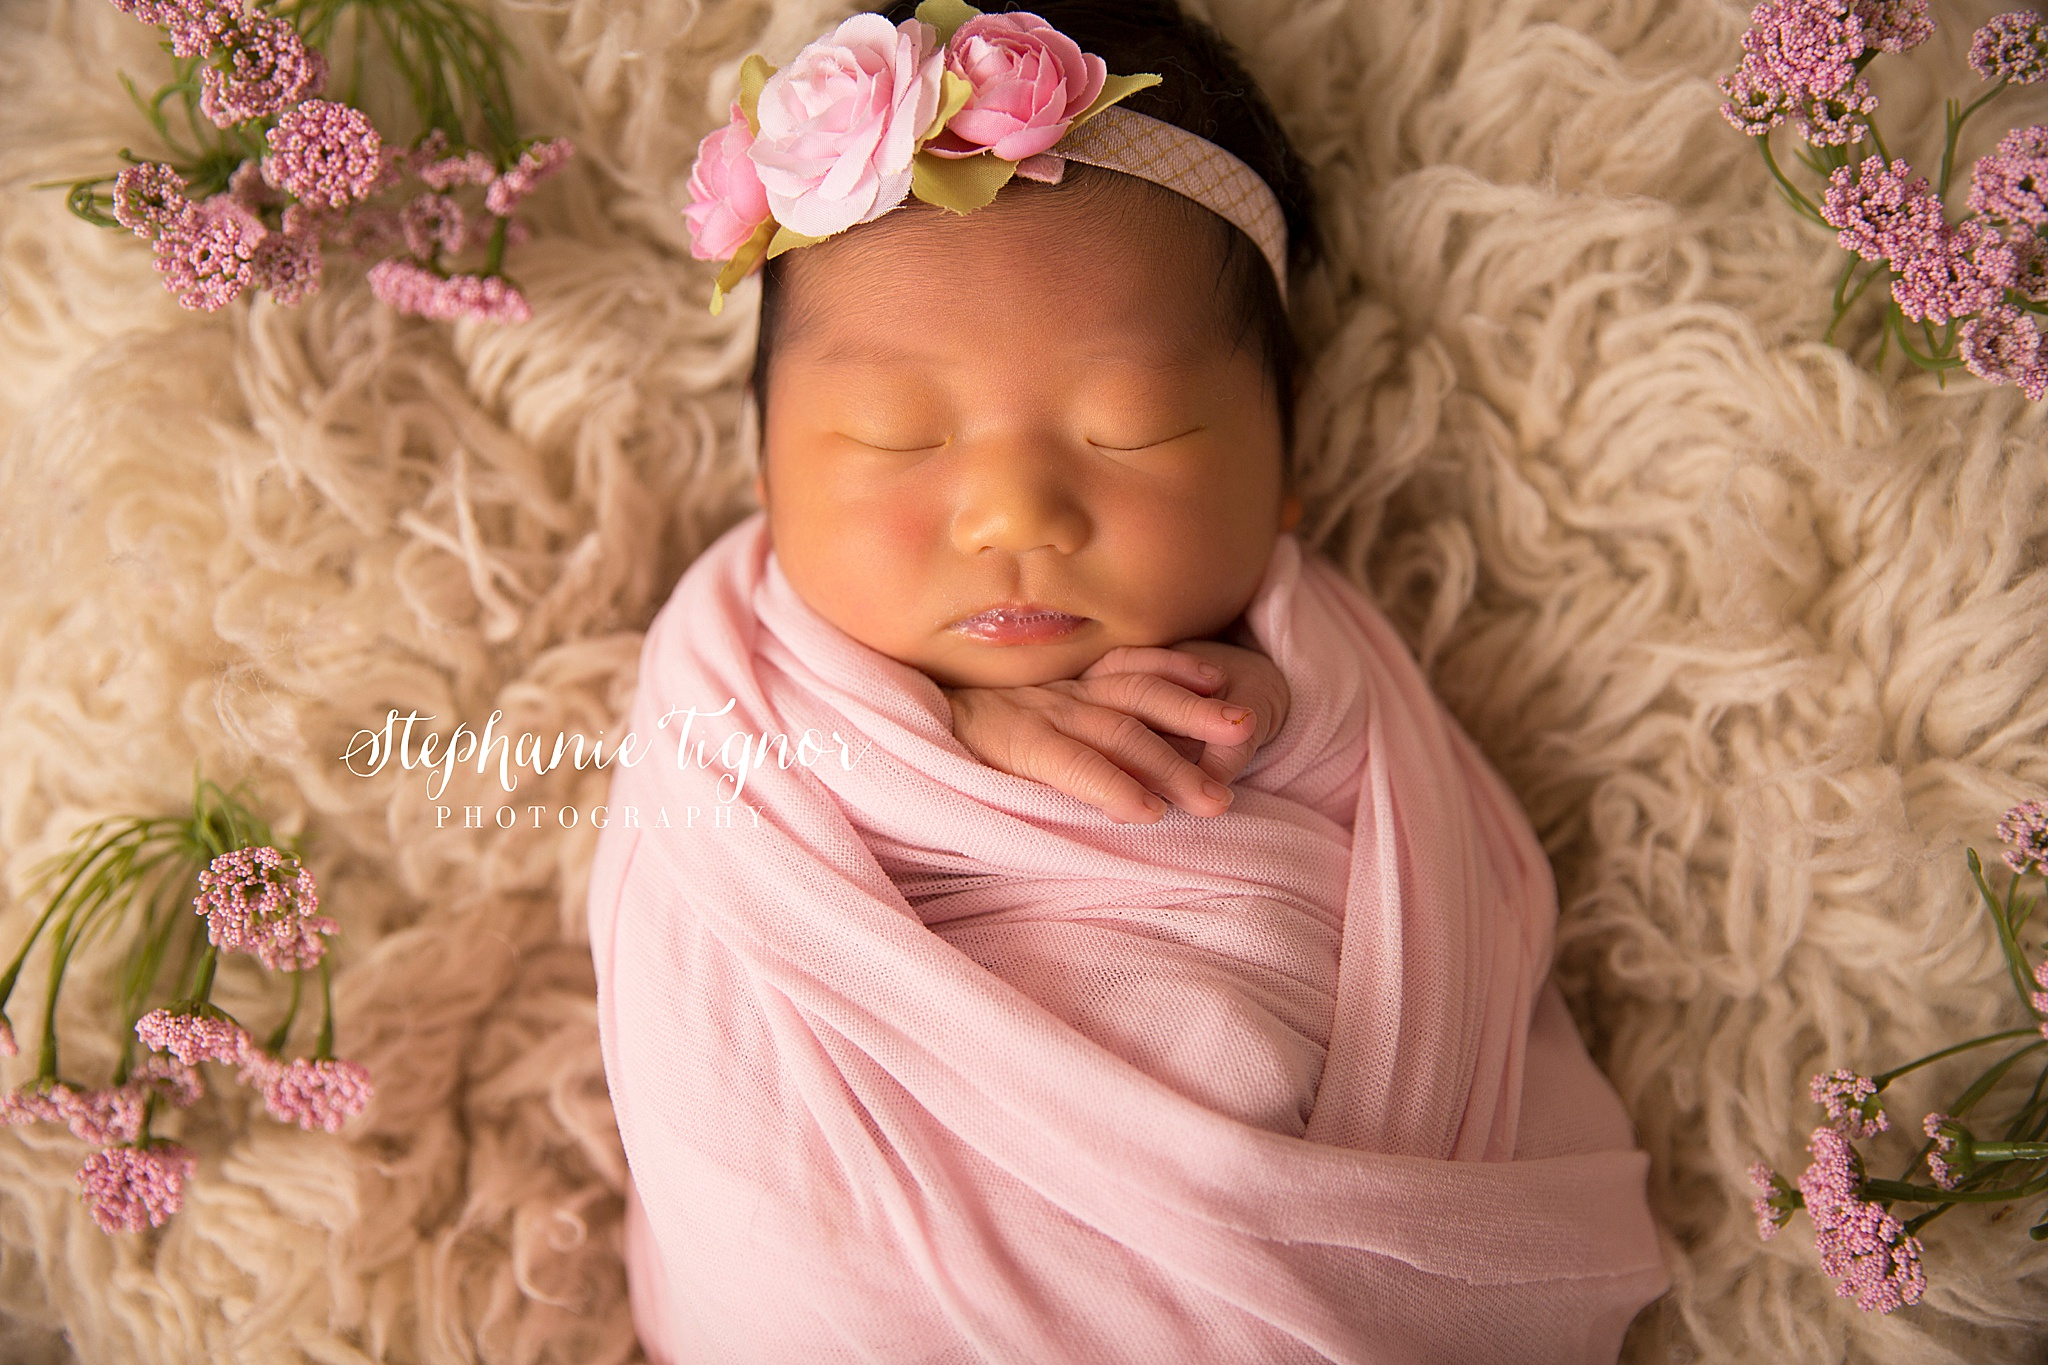 Stephanie Tignor Photography_Newborn Photographer_0076.jpg